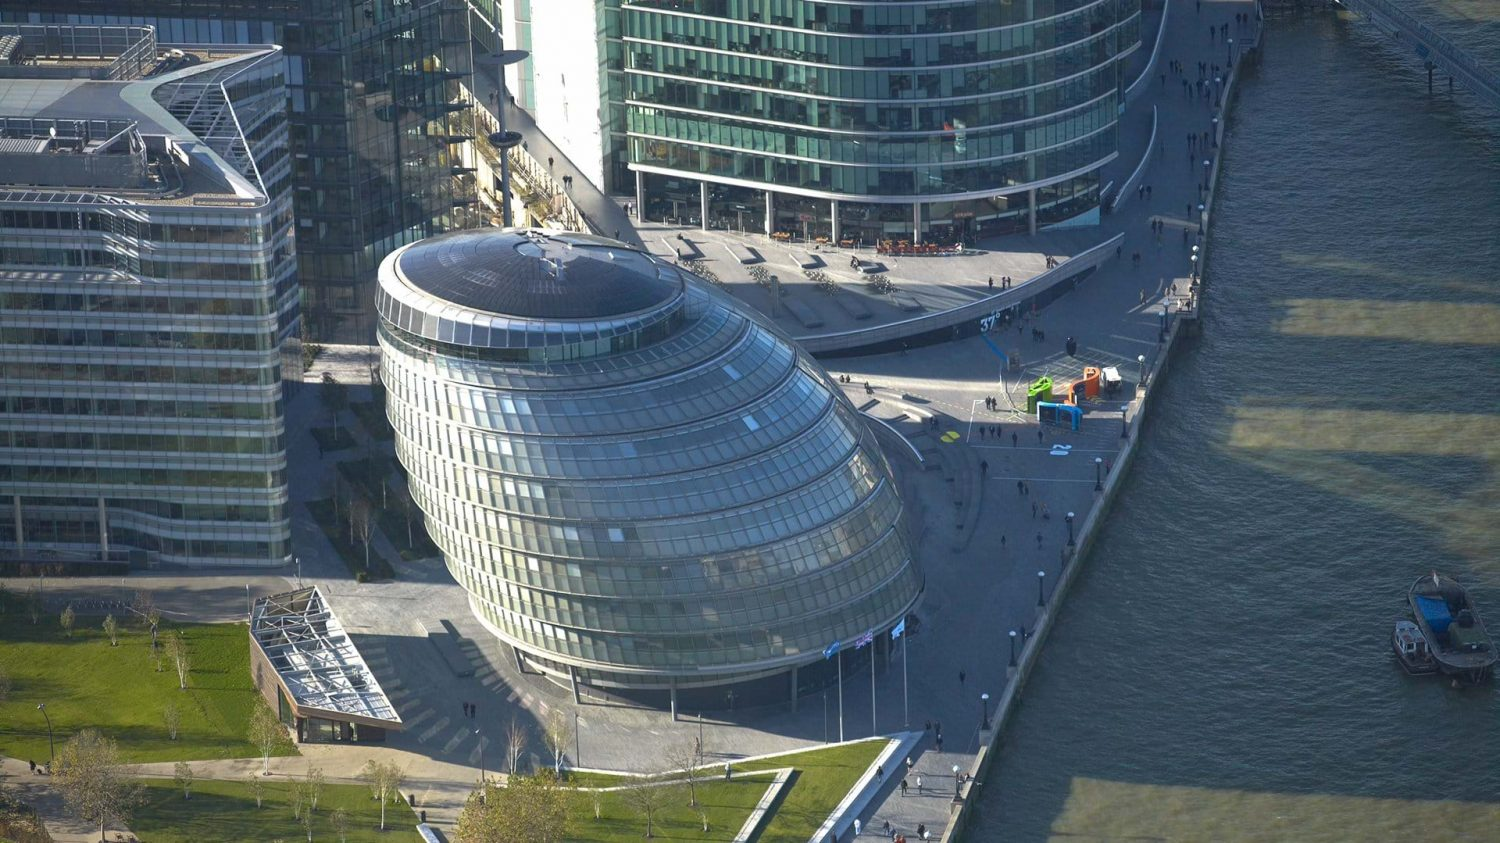 city hall - foster + partners - london - igs nostalgia - 6